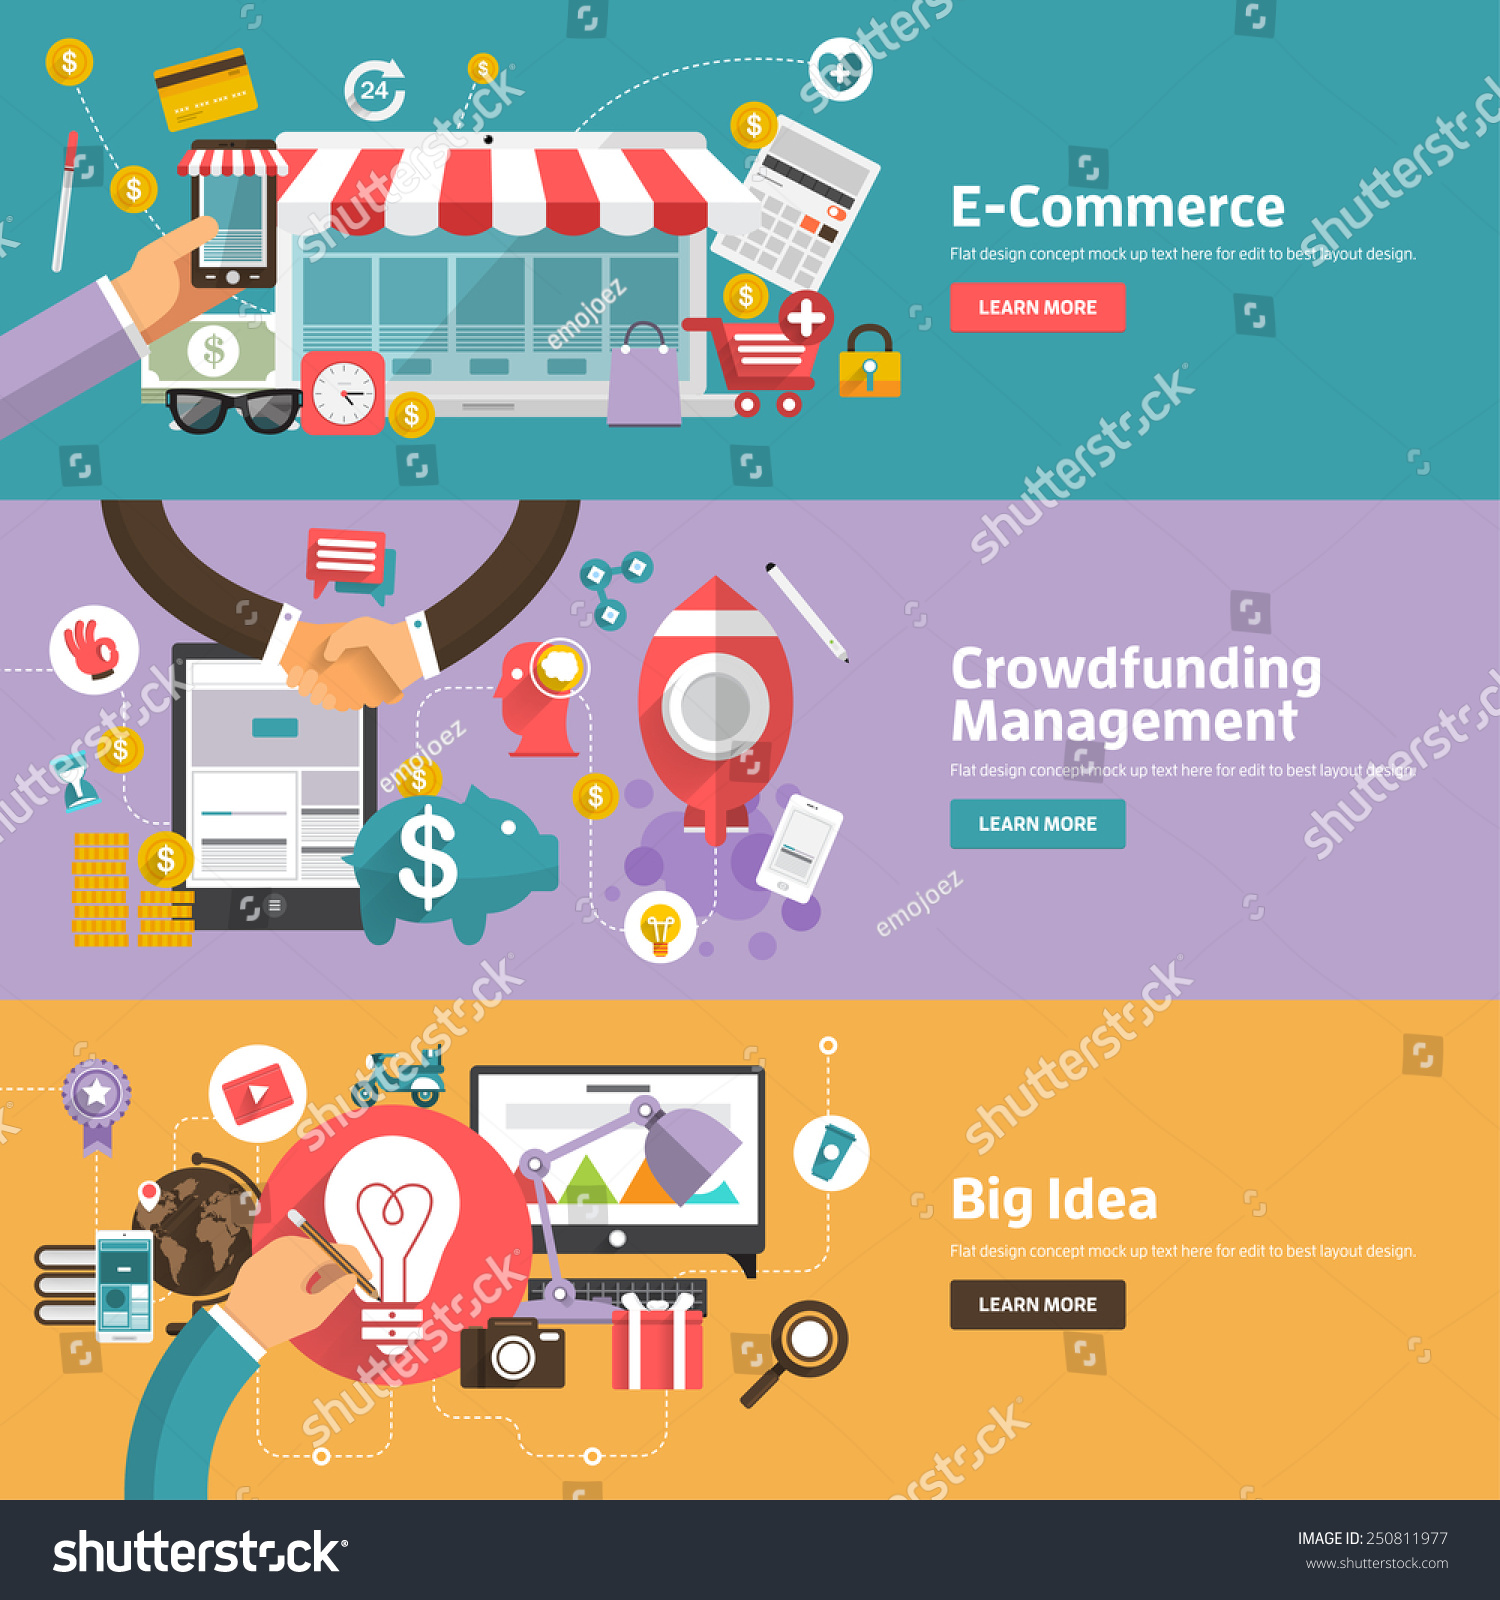 Promotional Images Management Stock Vector Flat Design Concepts For E Commerce